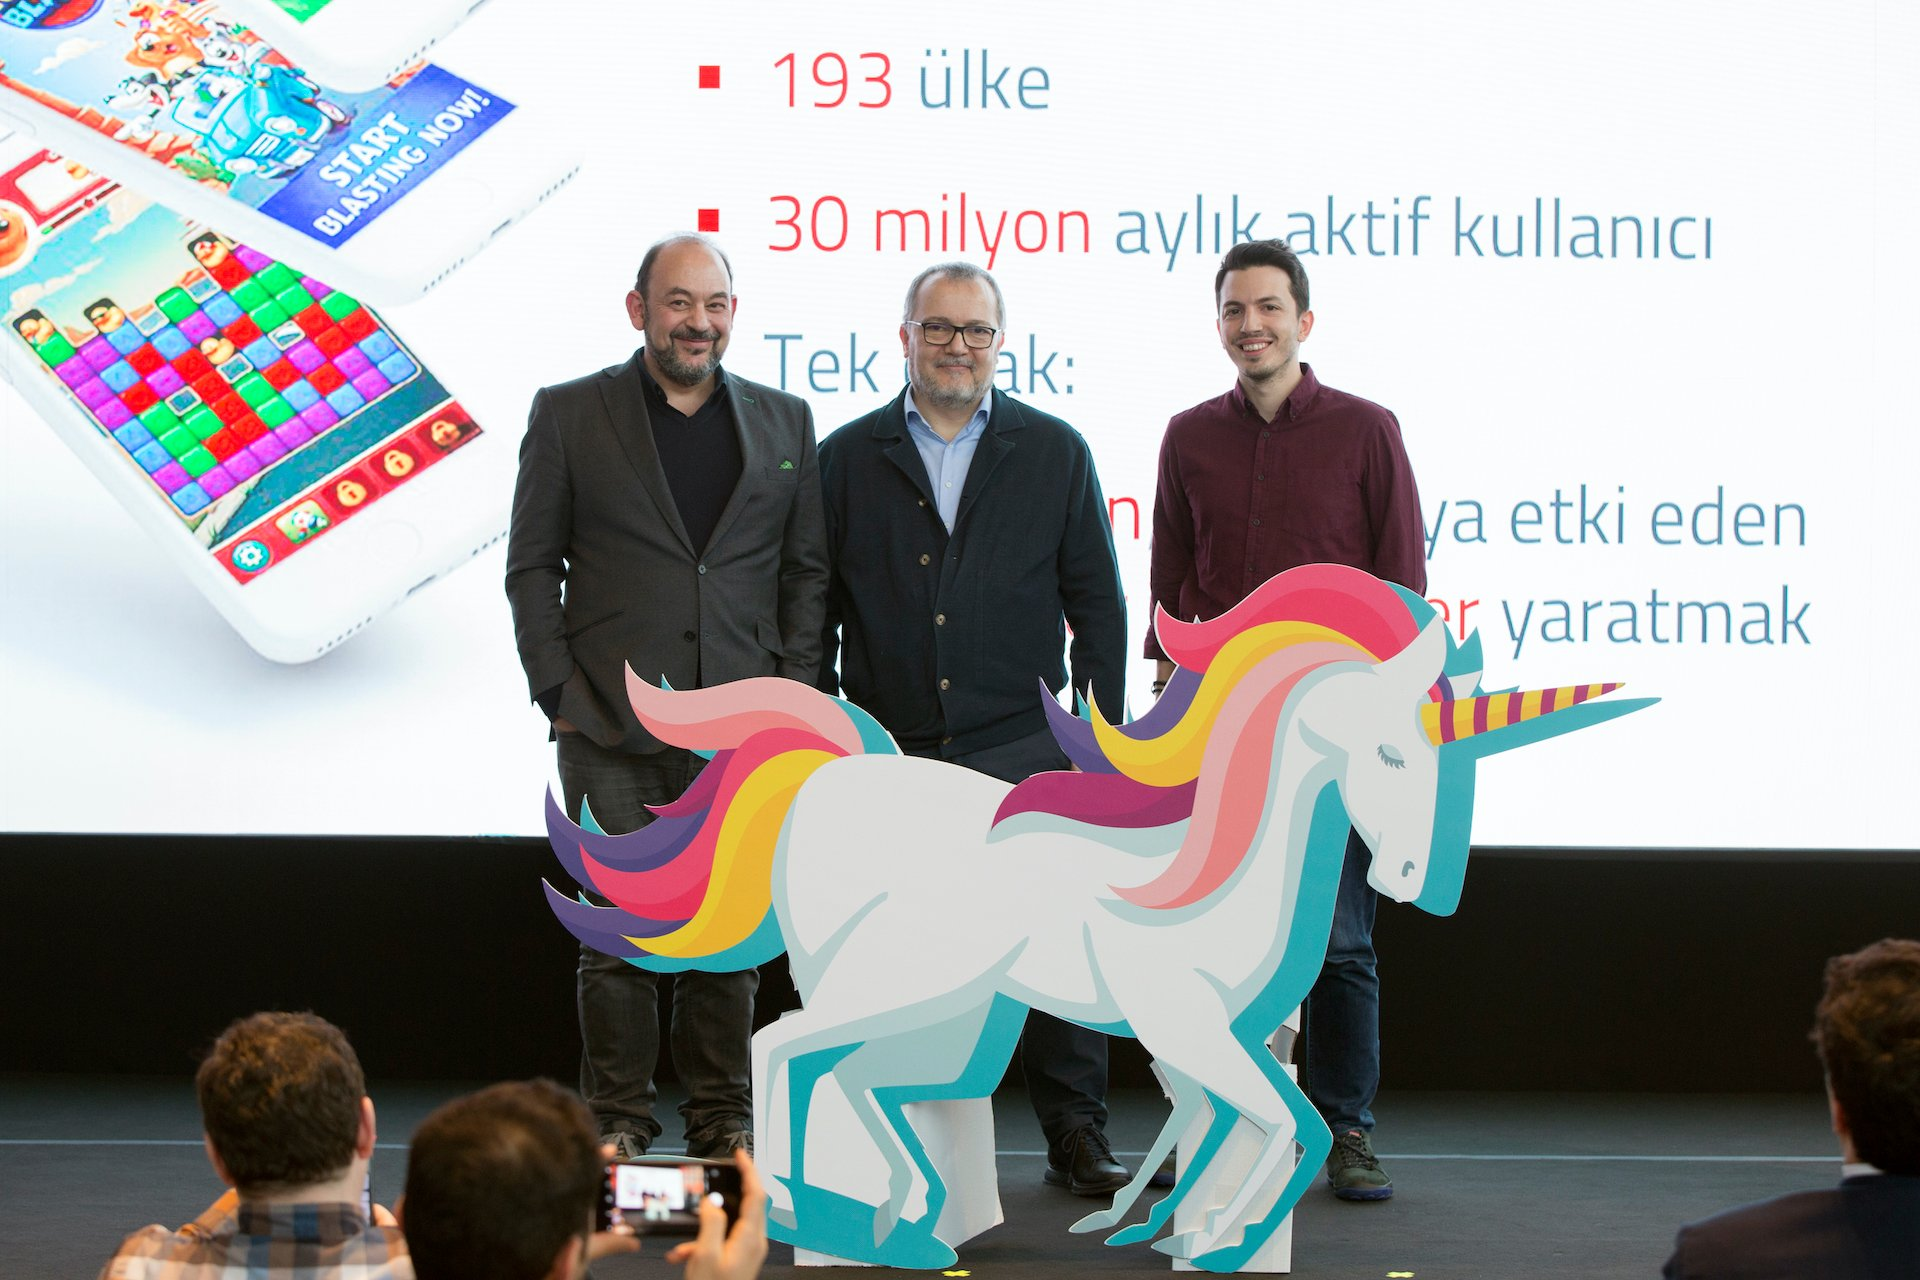 Sina Afra (L), the head of the Entrepreneurship Foundation and the founder of Evtiko, Peak Strategy Director Ömer İnönü (R) and Nazım Salur (C), the founder of Getir, pose in front of a unicorn during a startups.watch event in early 2020.